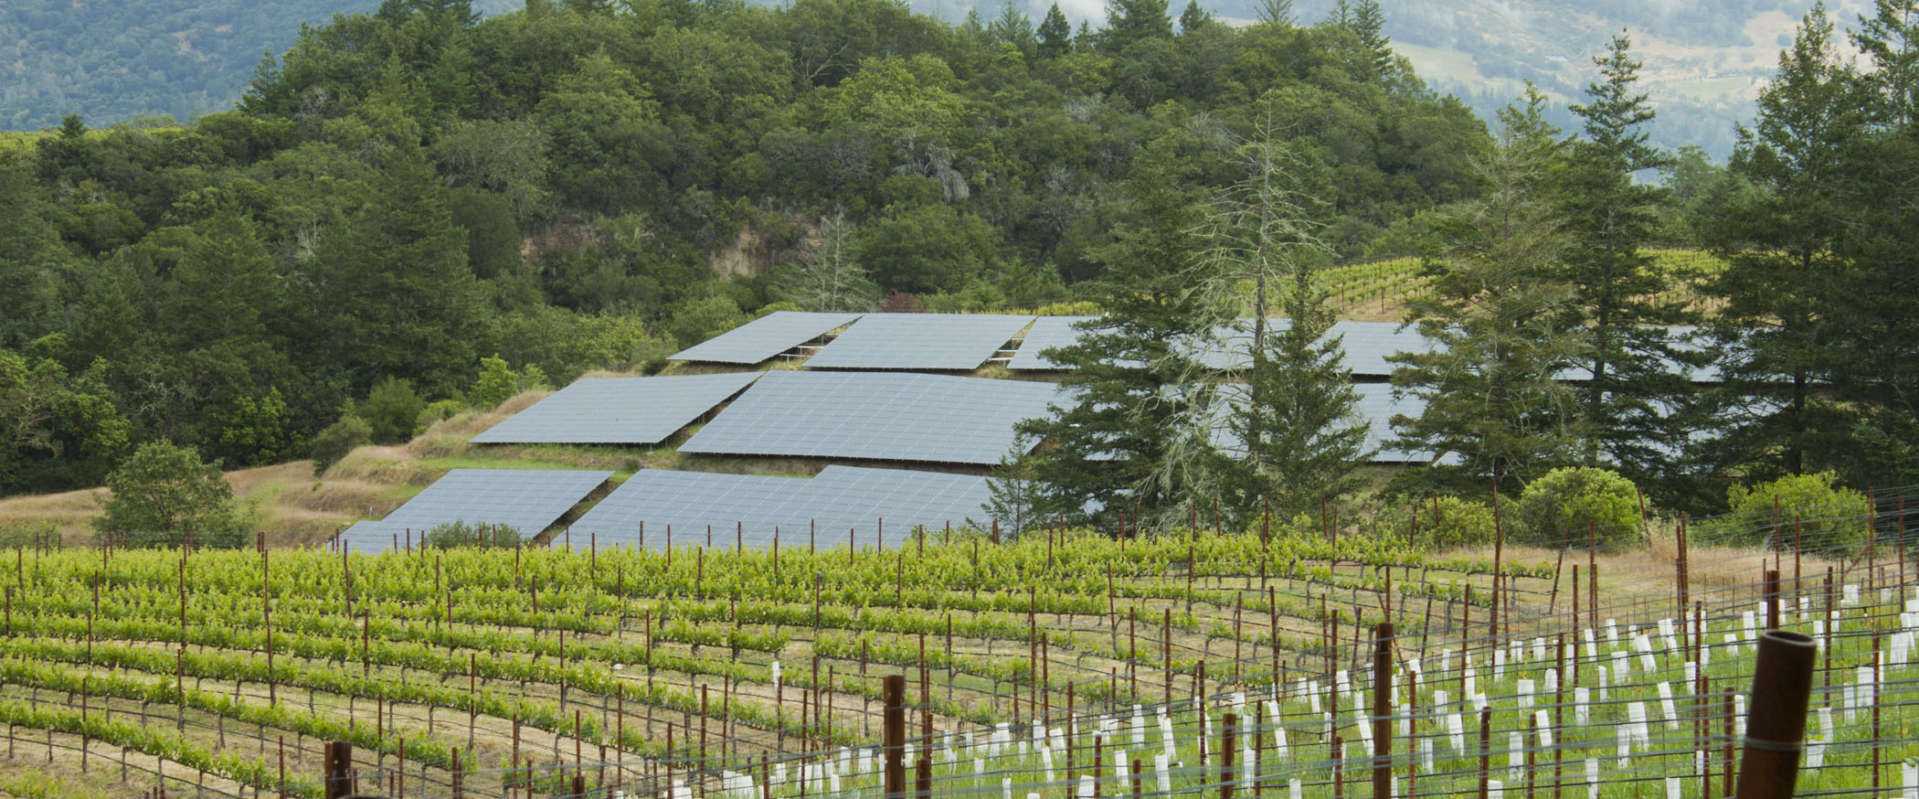 Schramsberg solar panels near McEachran Vineyard with misty mountains the the background